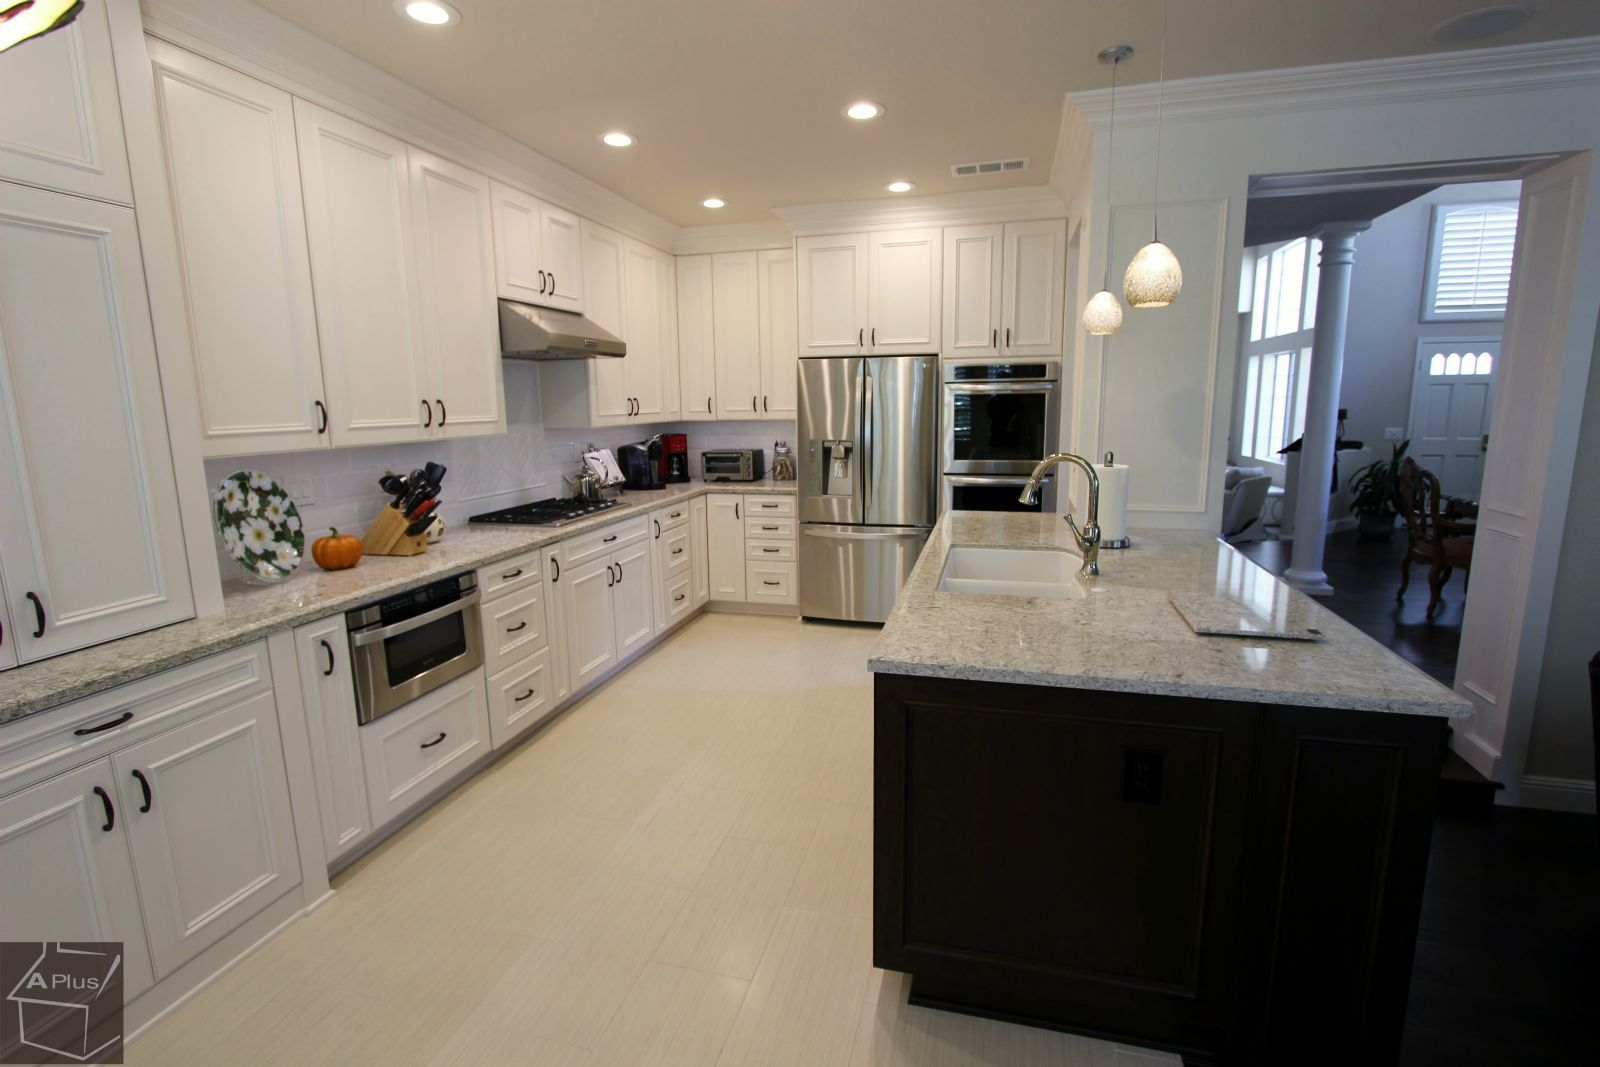 APlus kitchen Cabinets remodeling Orange County Kitchen